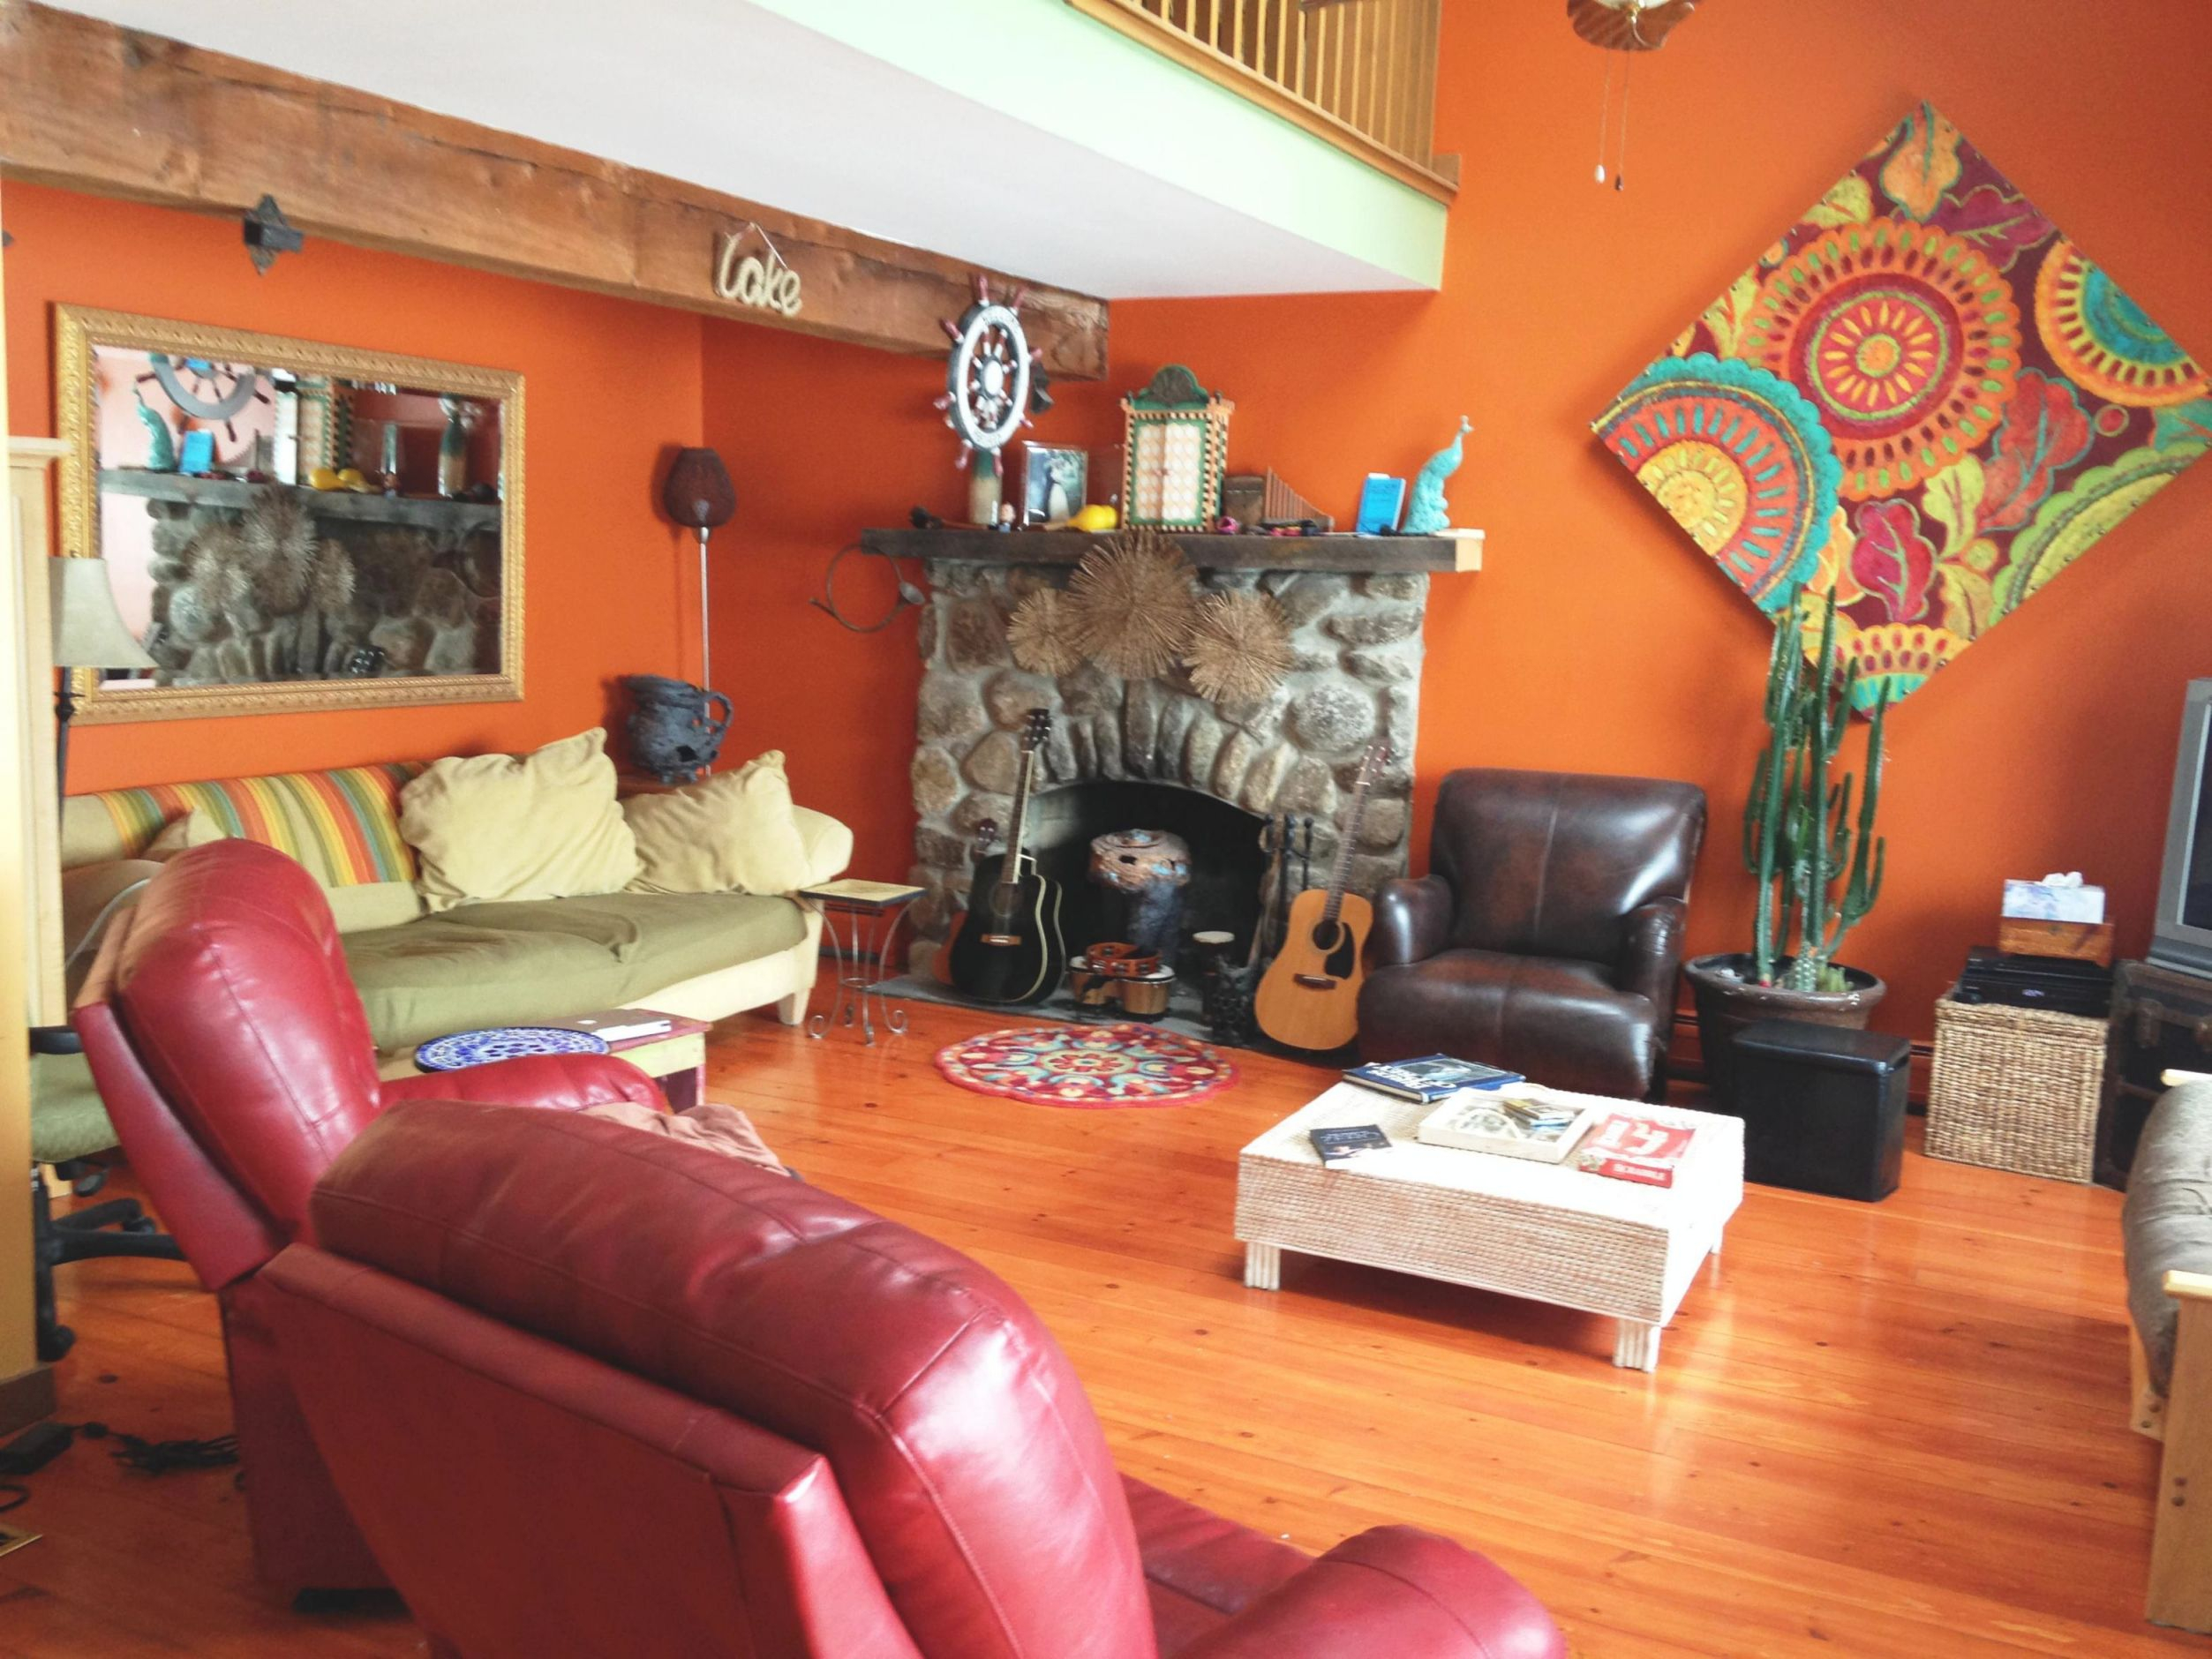 Chairs Images South Modern Living Amazing Setup Small with regard to African Decor Living Room